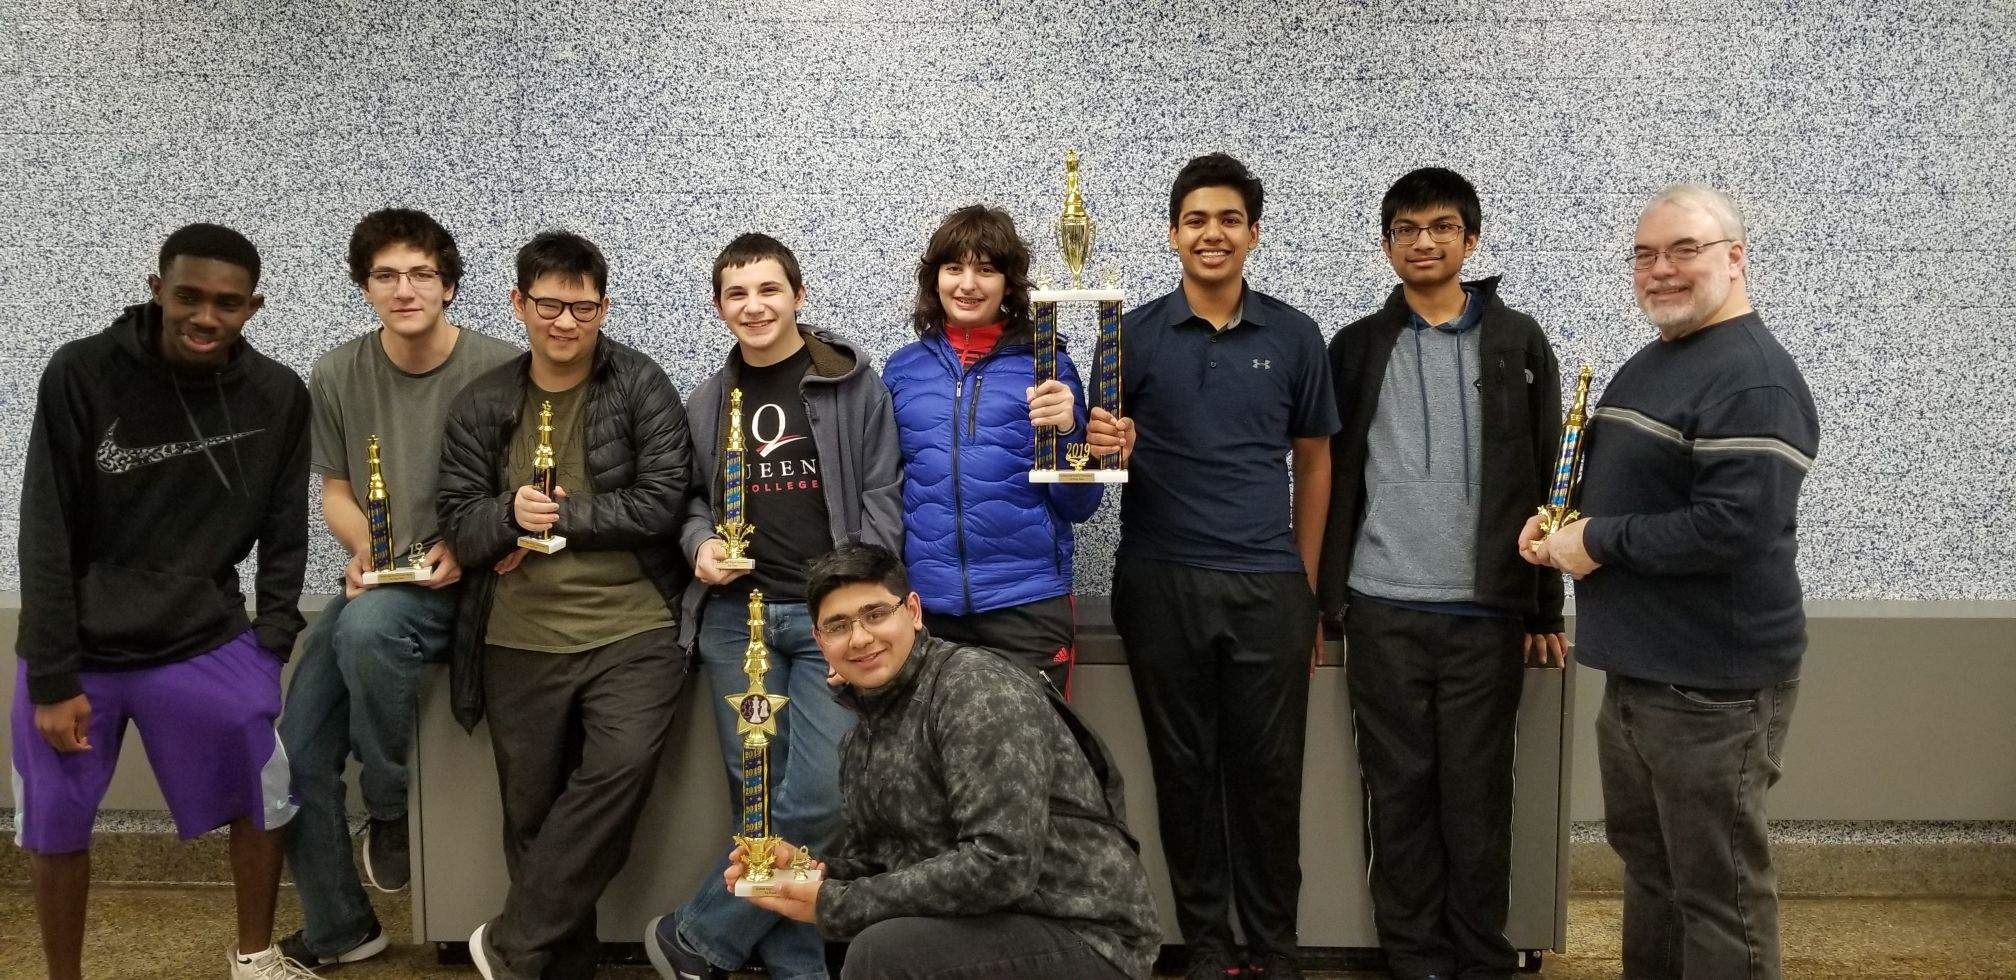 Hills East Chess Team Finishes 4th Consecutive Undefeated Season